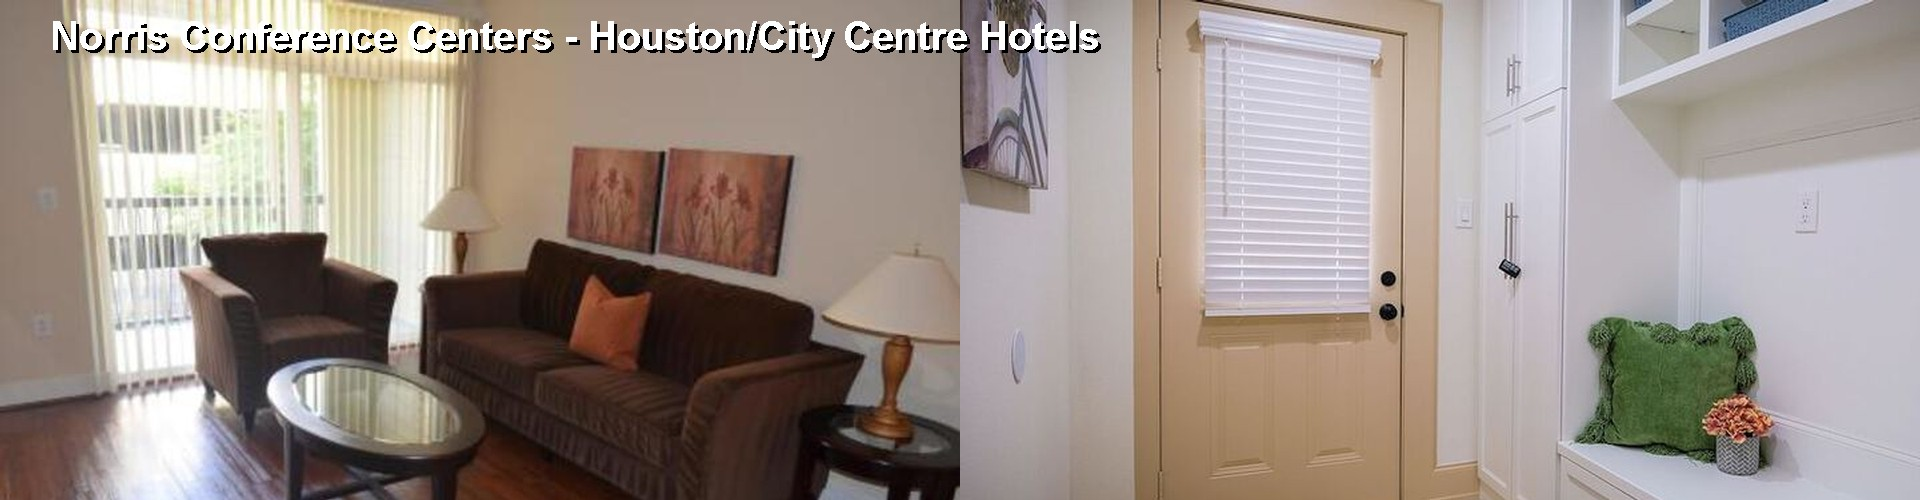 5 Best Hotels near Norris Conference Centers - Houston/City Centre